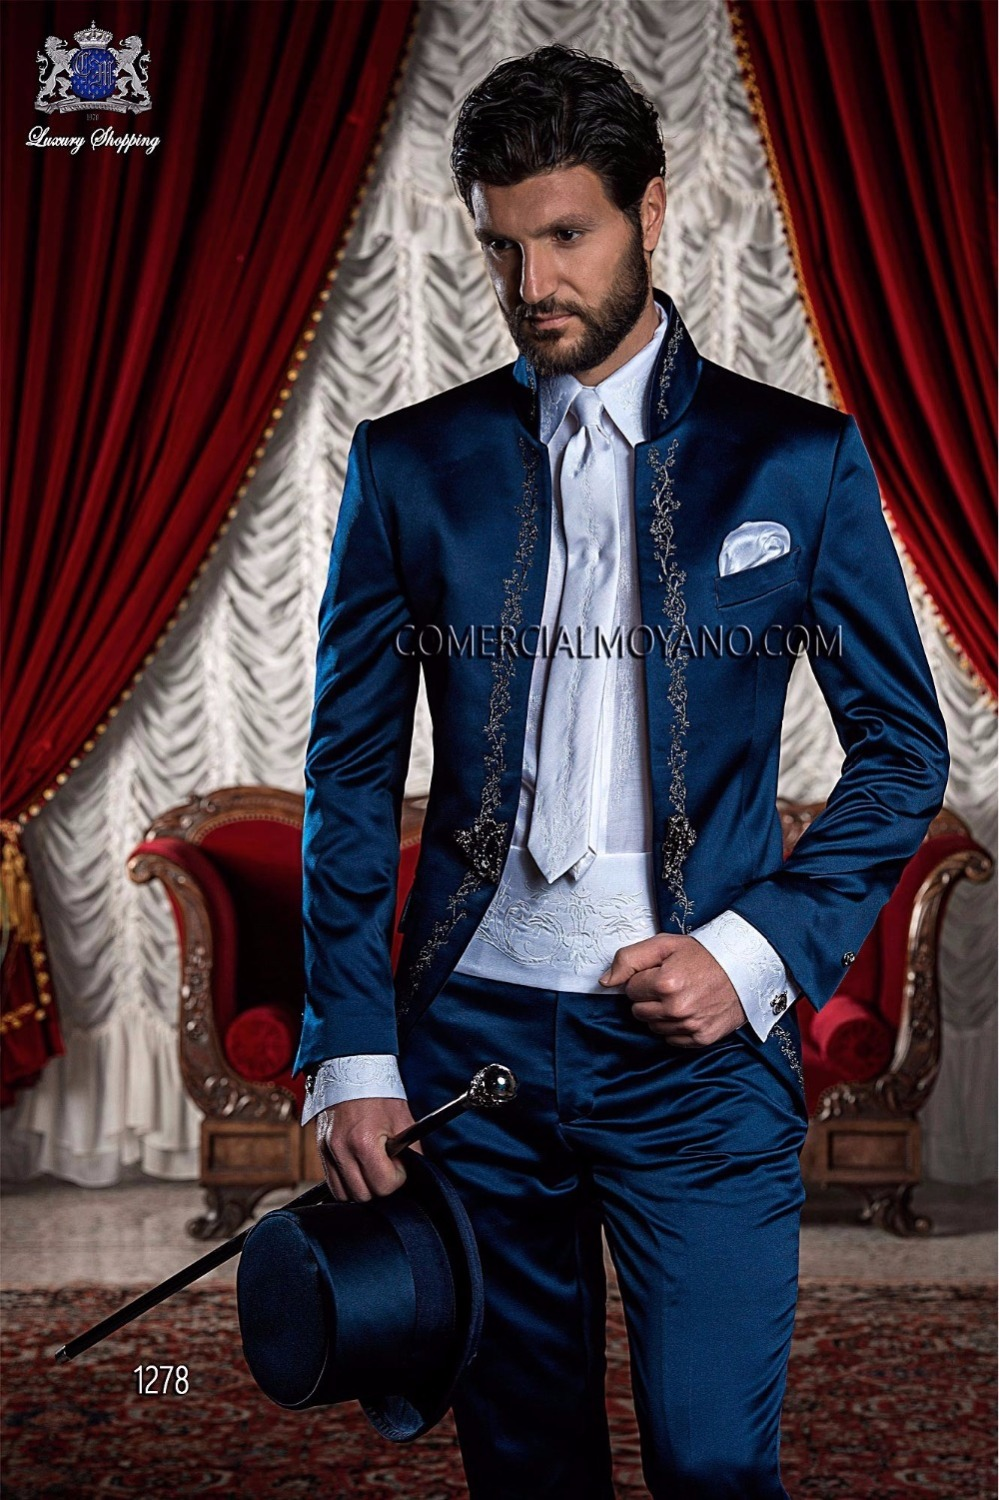 Latest Coat Pant Designs Navy Blue Satin Embroidery Italian Formal Custom Wedding Suits For Men Groom Slim Fit 2 Pieces Terno J6